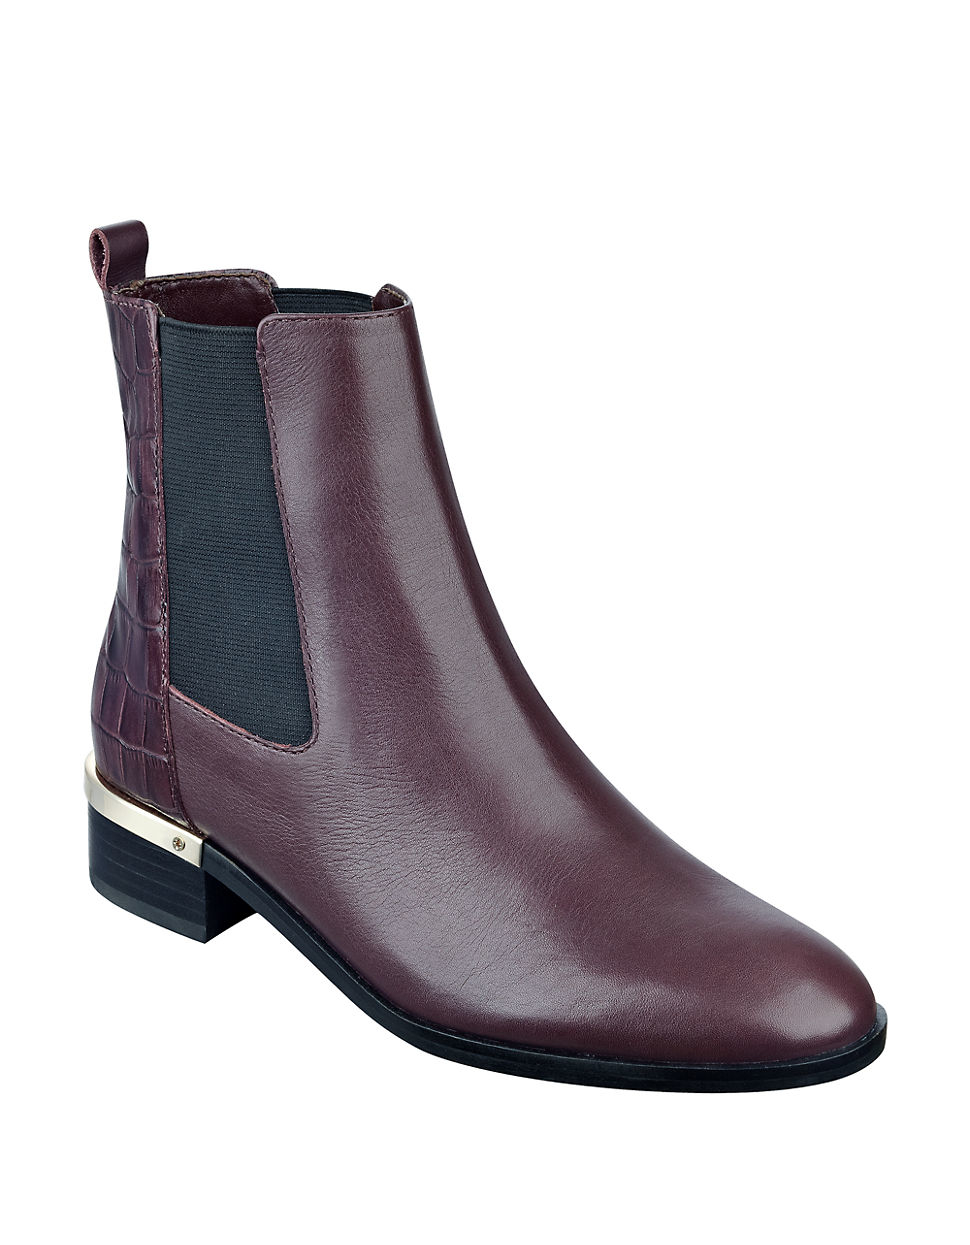 Ivanka trump Eday Leather Chelsea Boots in Purple